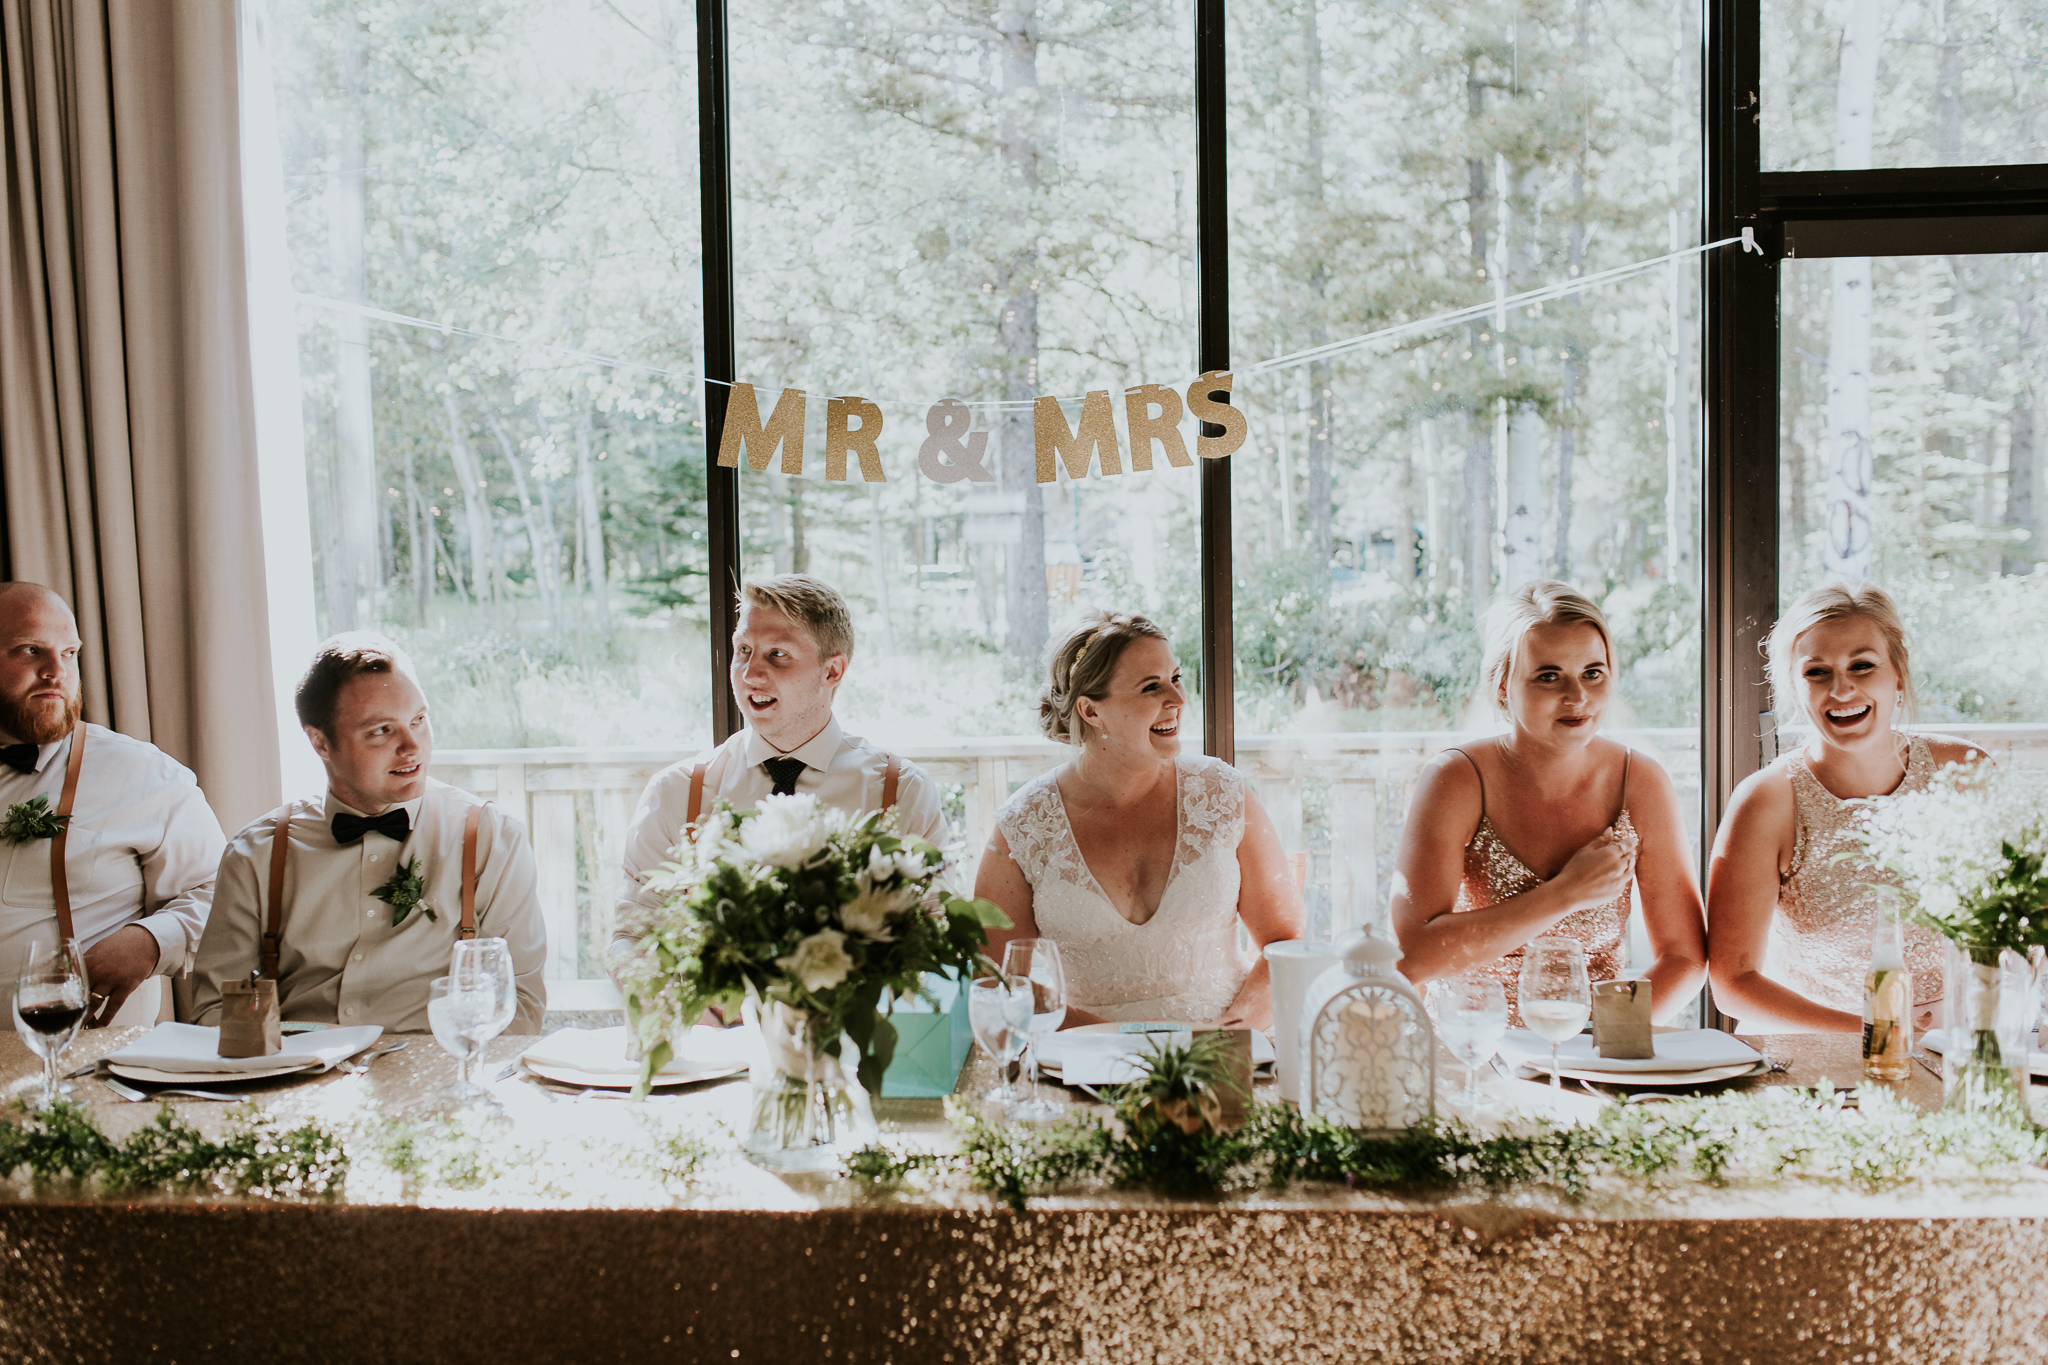 Bridal party table during reception at Delta Kananaskis wedding